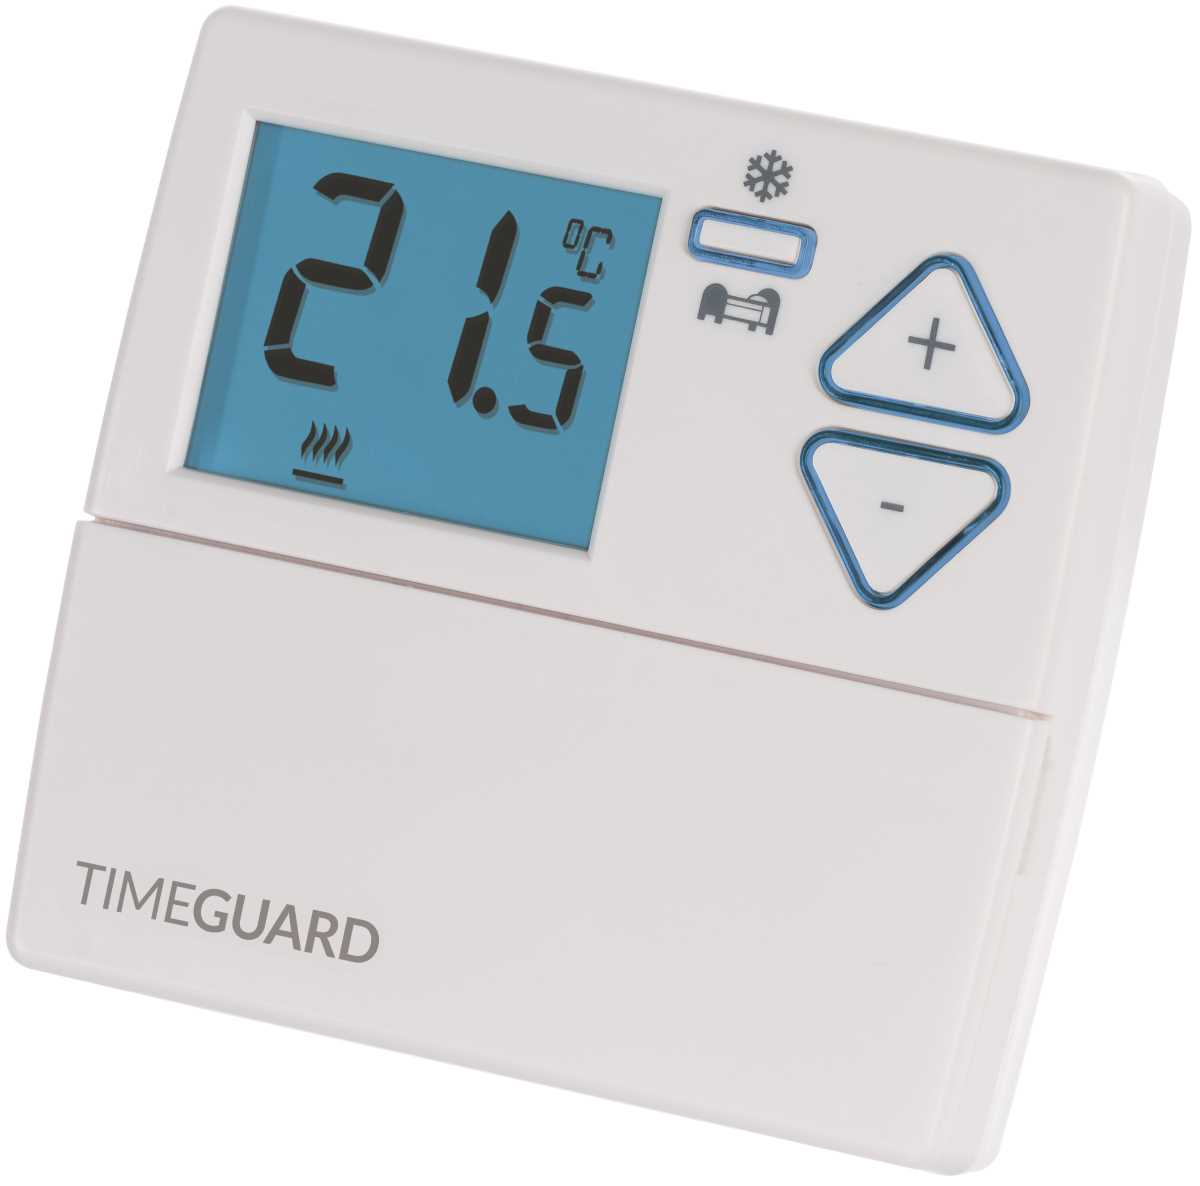 Timeguard TRT033N Digital Room Thermostat with Night Set-Back